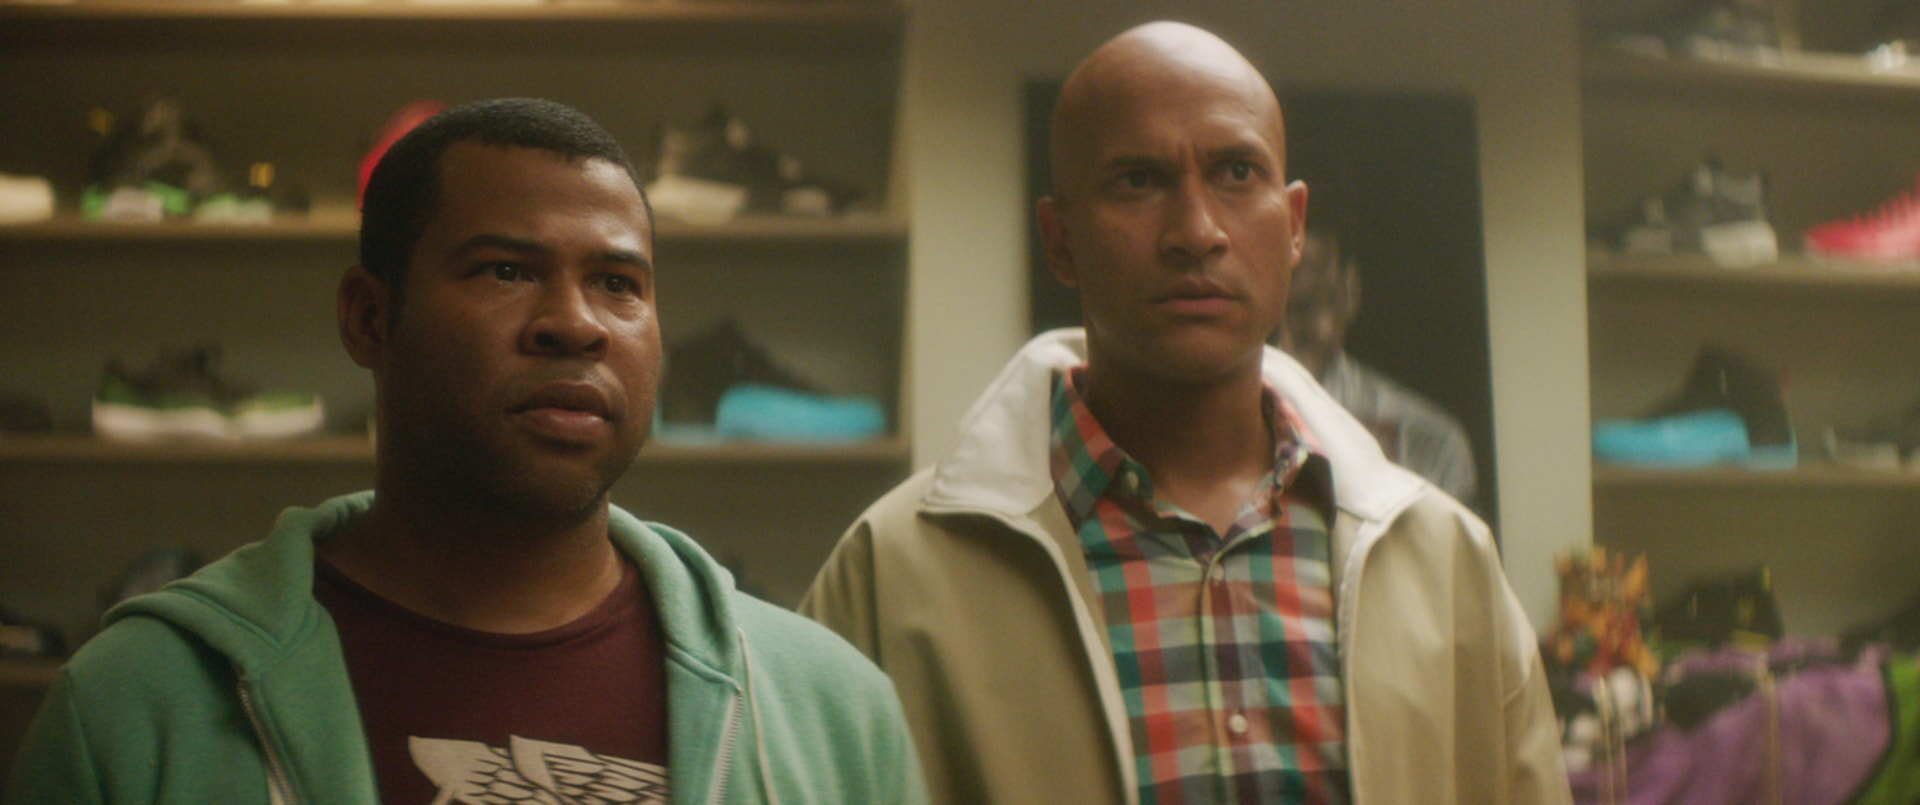 JORDAN PEELE as Rell and KEEGAN-MICHAEL KEY as Clarence looking perplexed